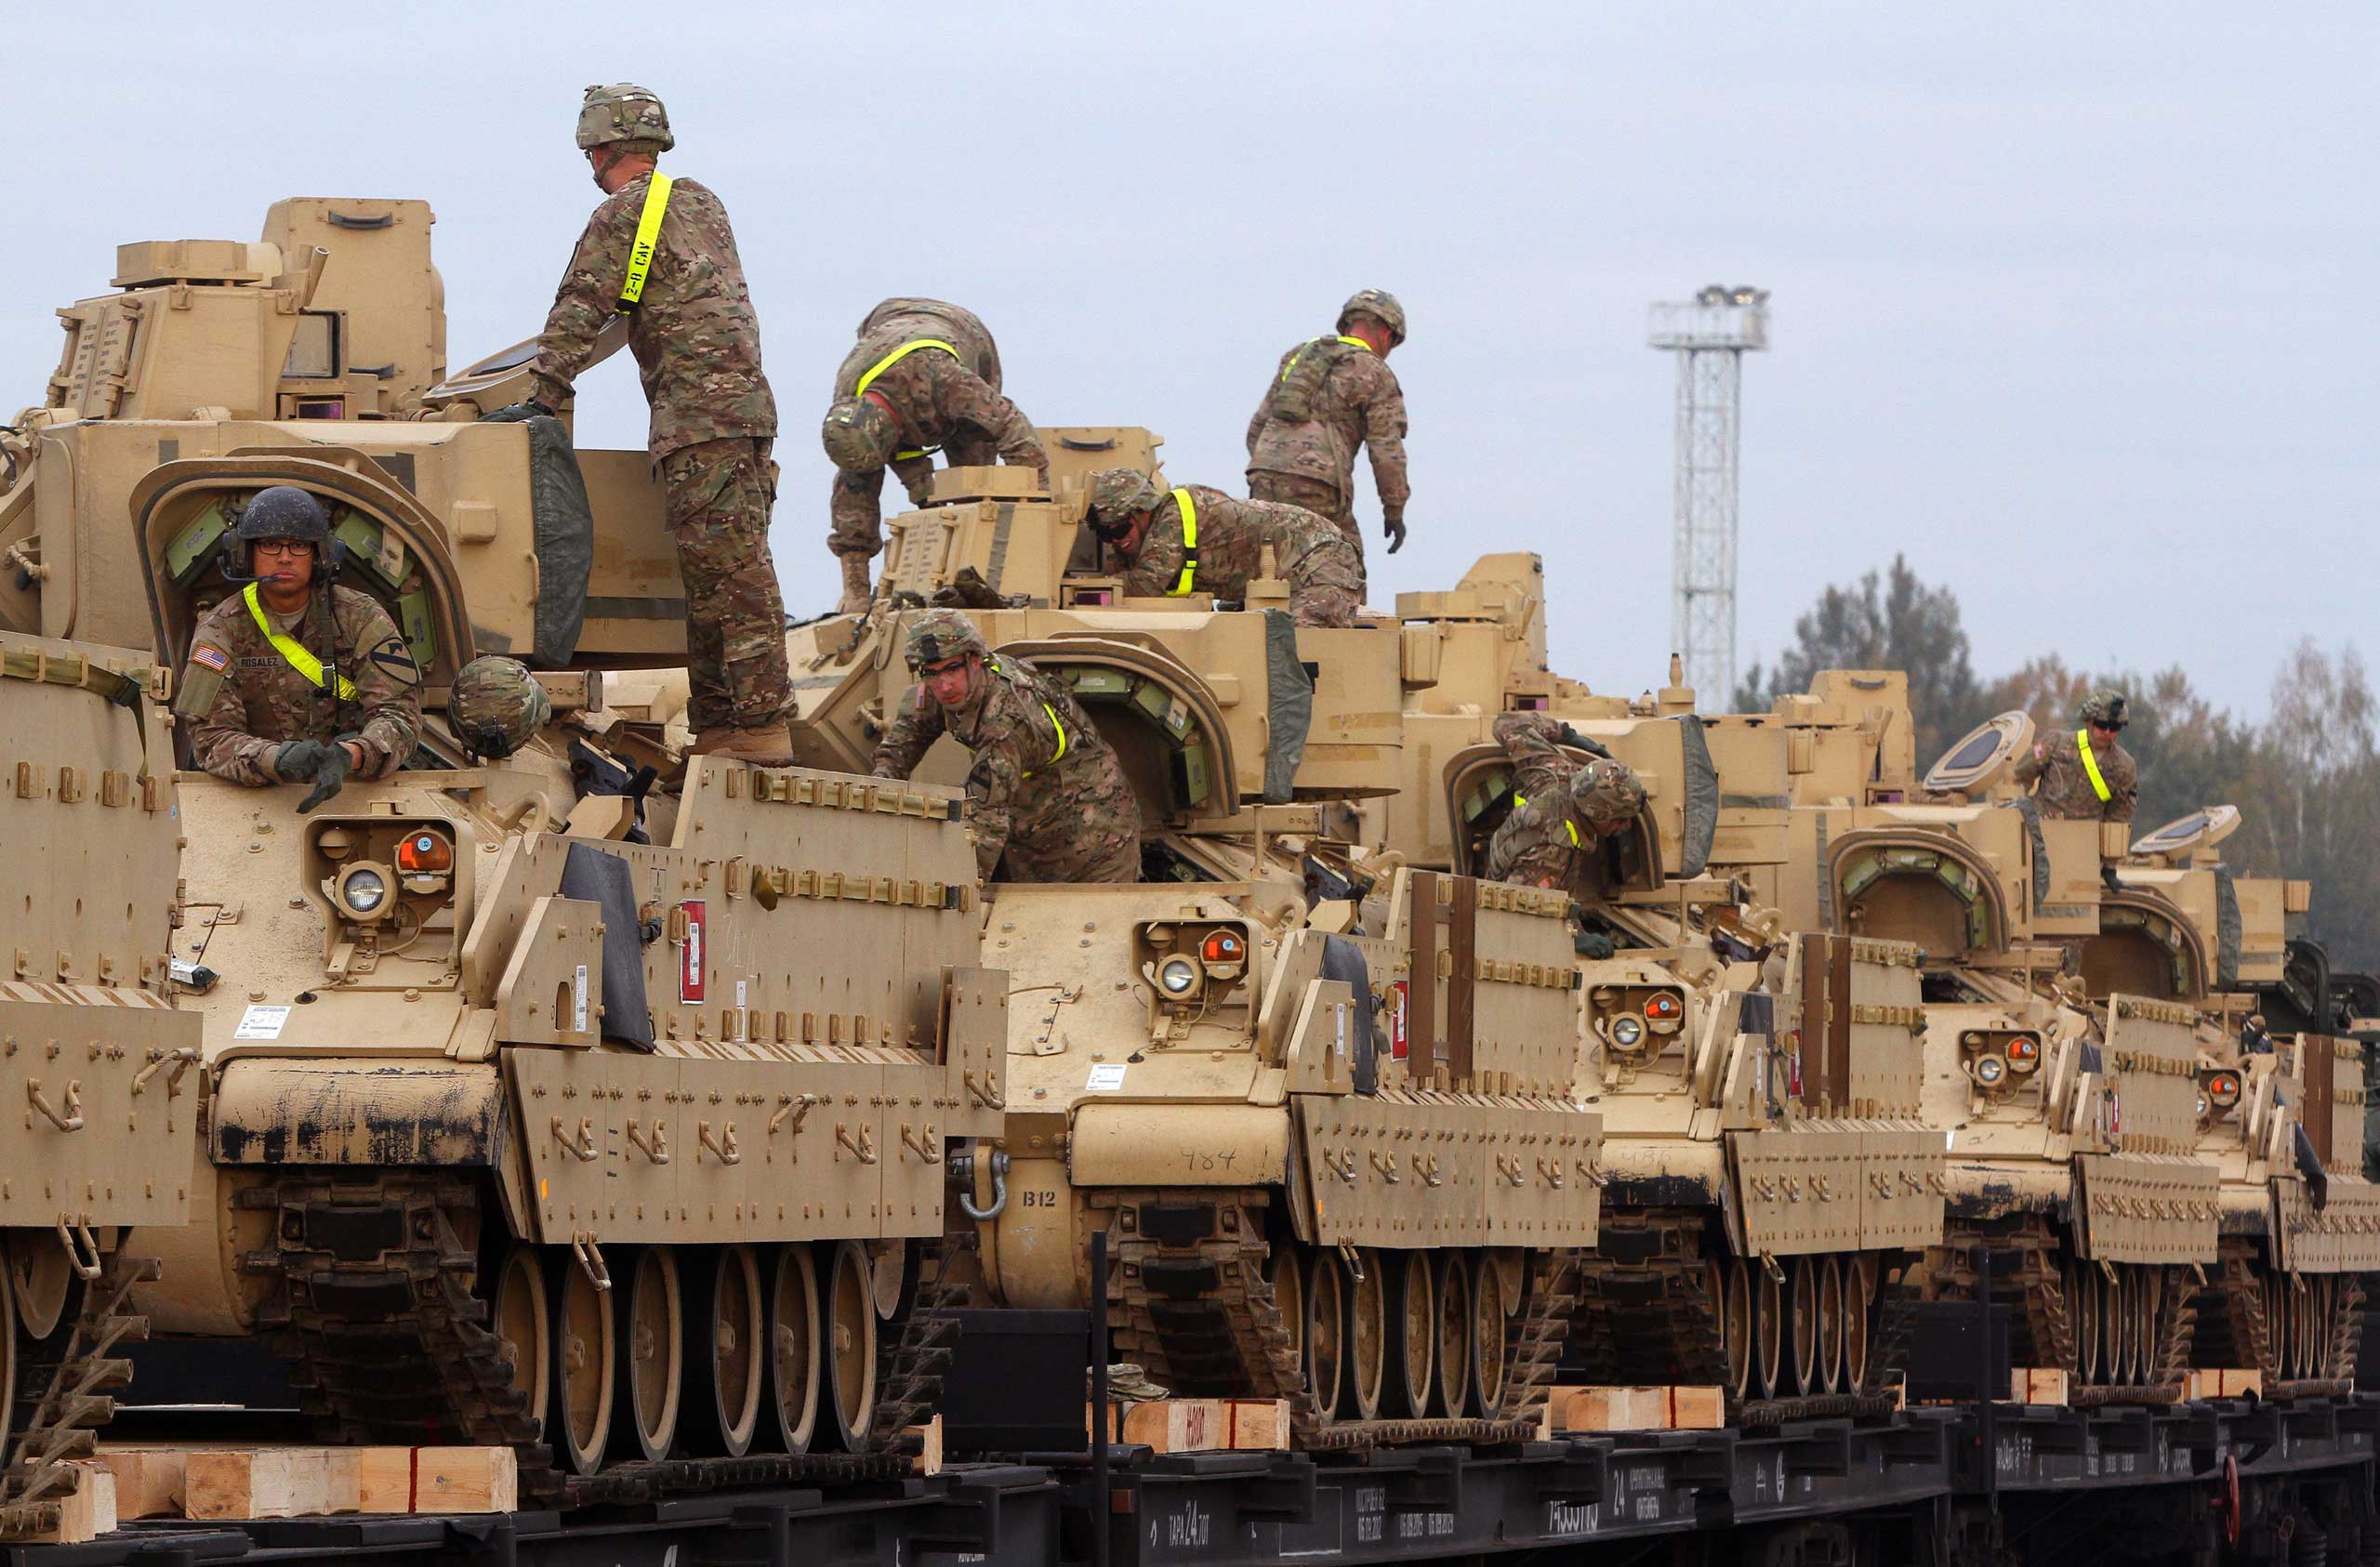 Members of the US Army 1st Brigade, 1st Cavalry Division, transport heavy combat equipment including Bradley Fighting Vehicles at the railway station near the Rukla military base in Lithuania, Oct. 4, 2014.